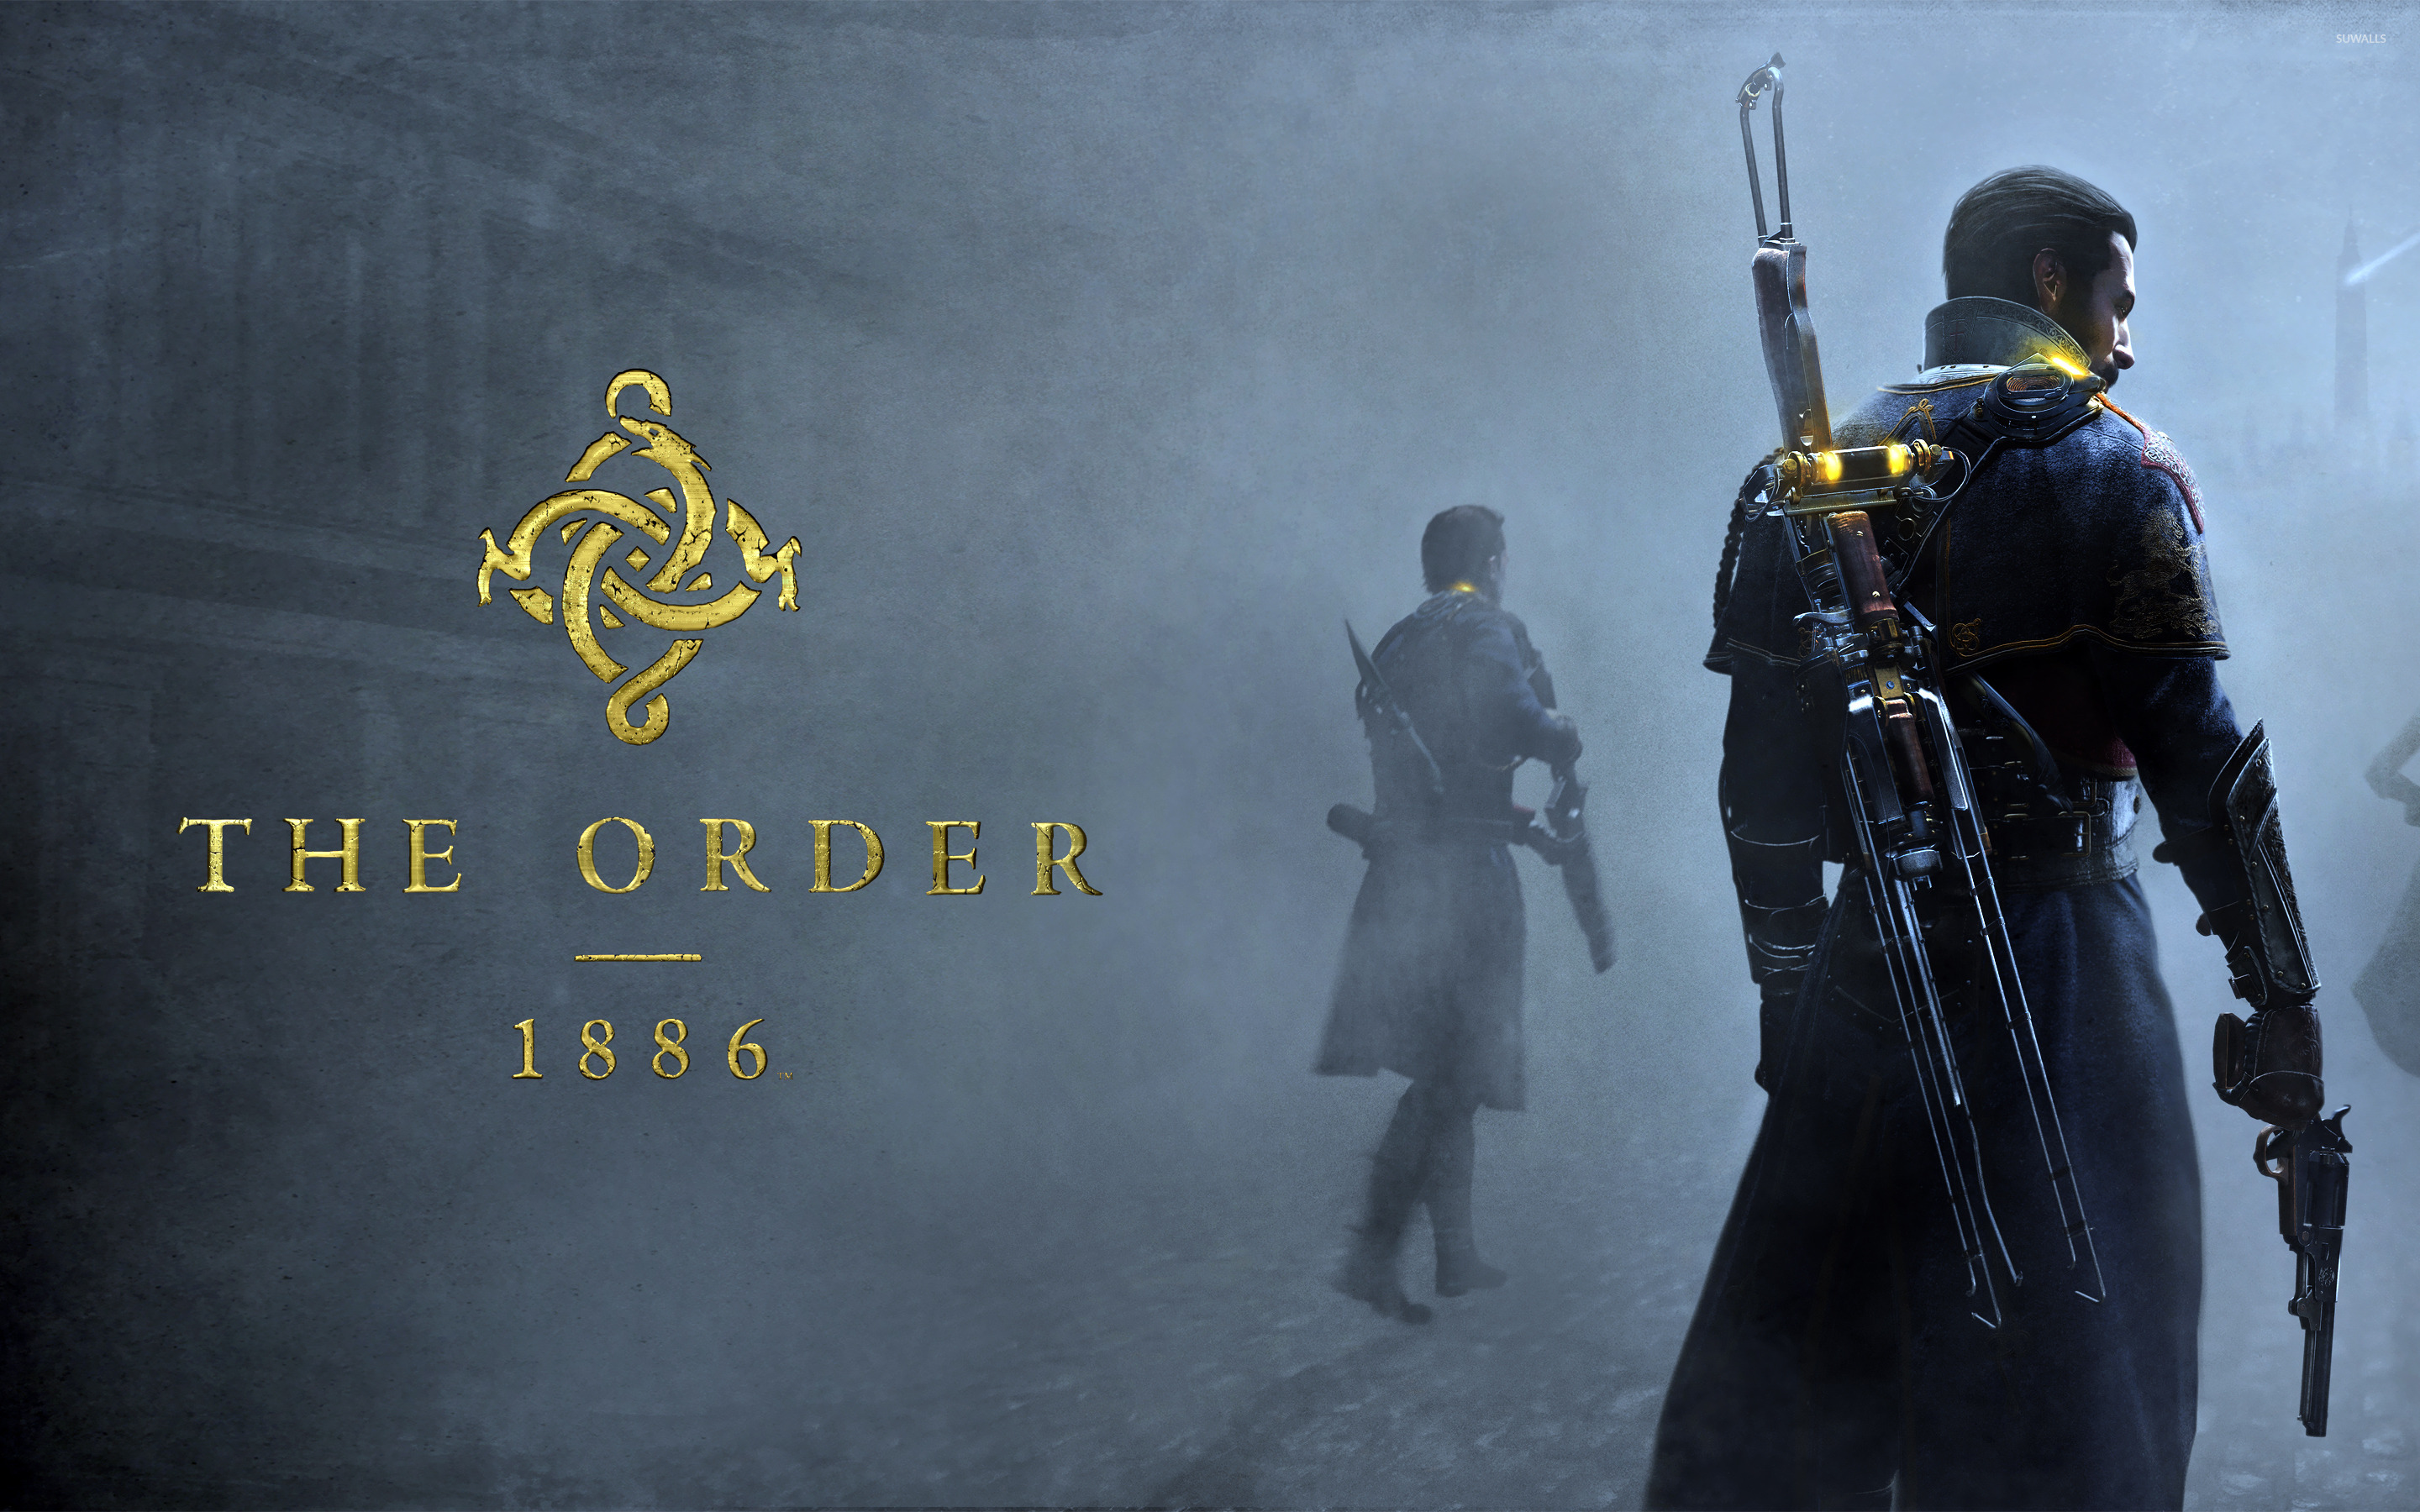 The Order 1886 wallpaper - Game wallpapers - #21515